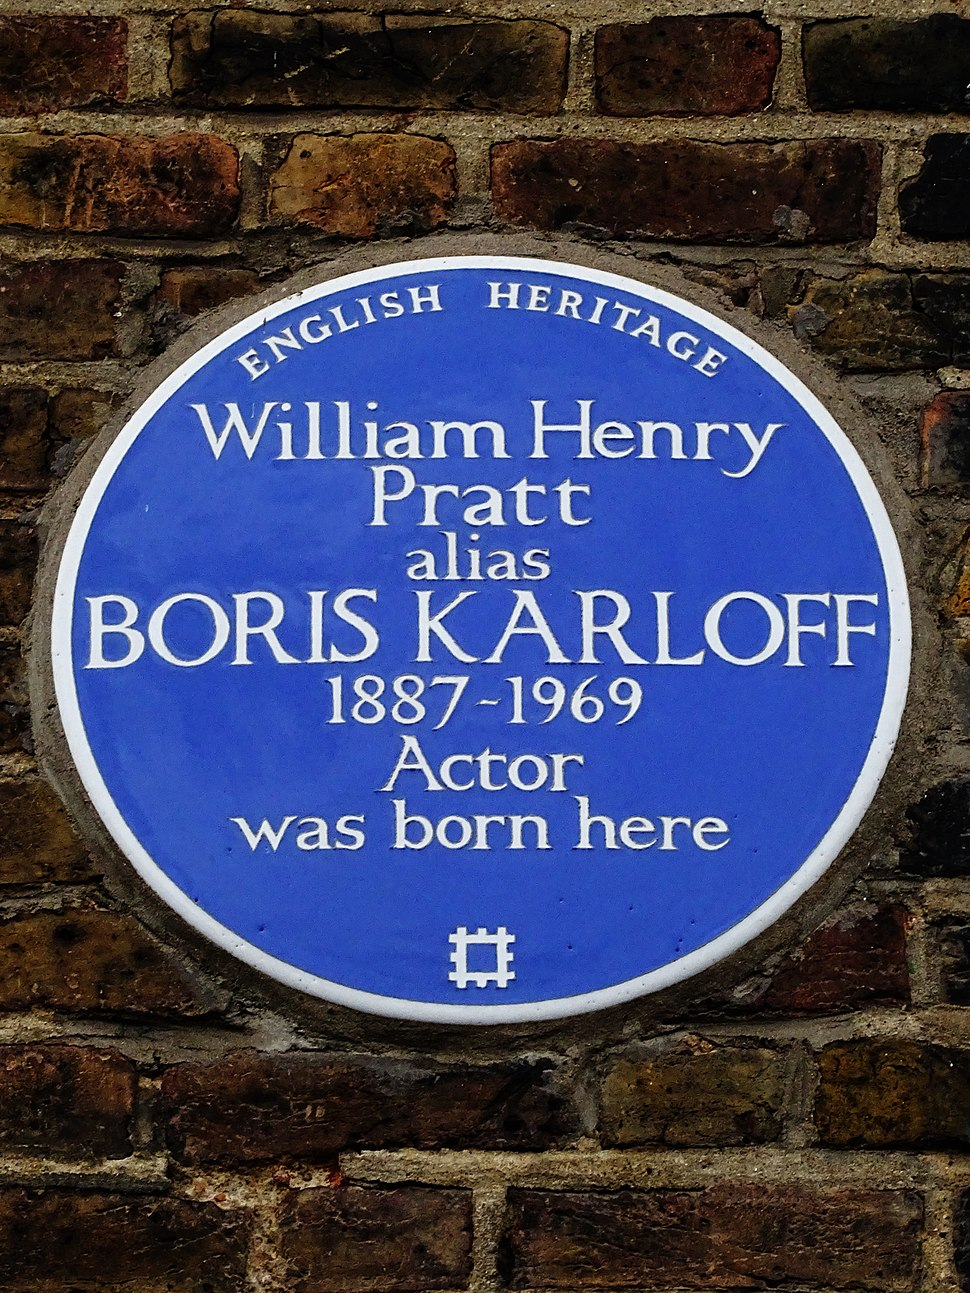 William Henry Pratt alias BORIS KARLOFF 1887-1969 Actor was born here